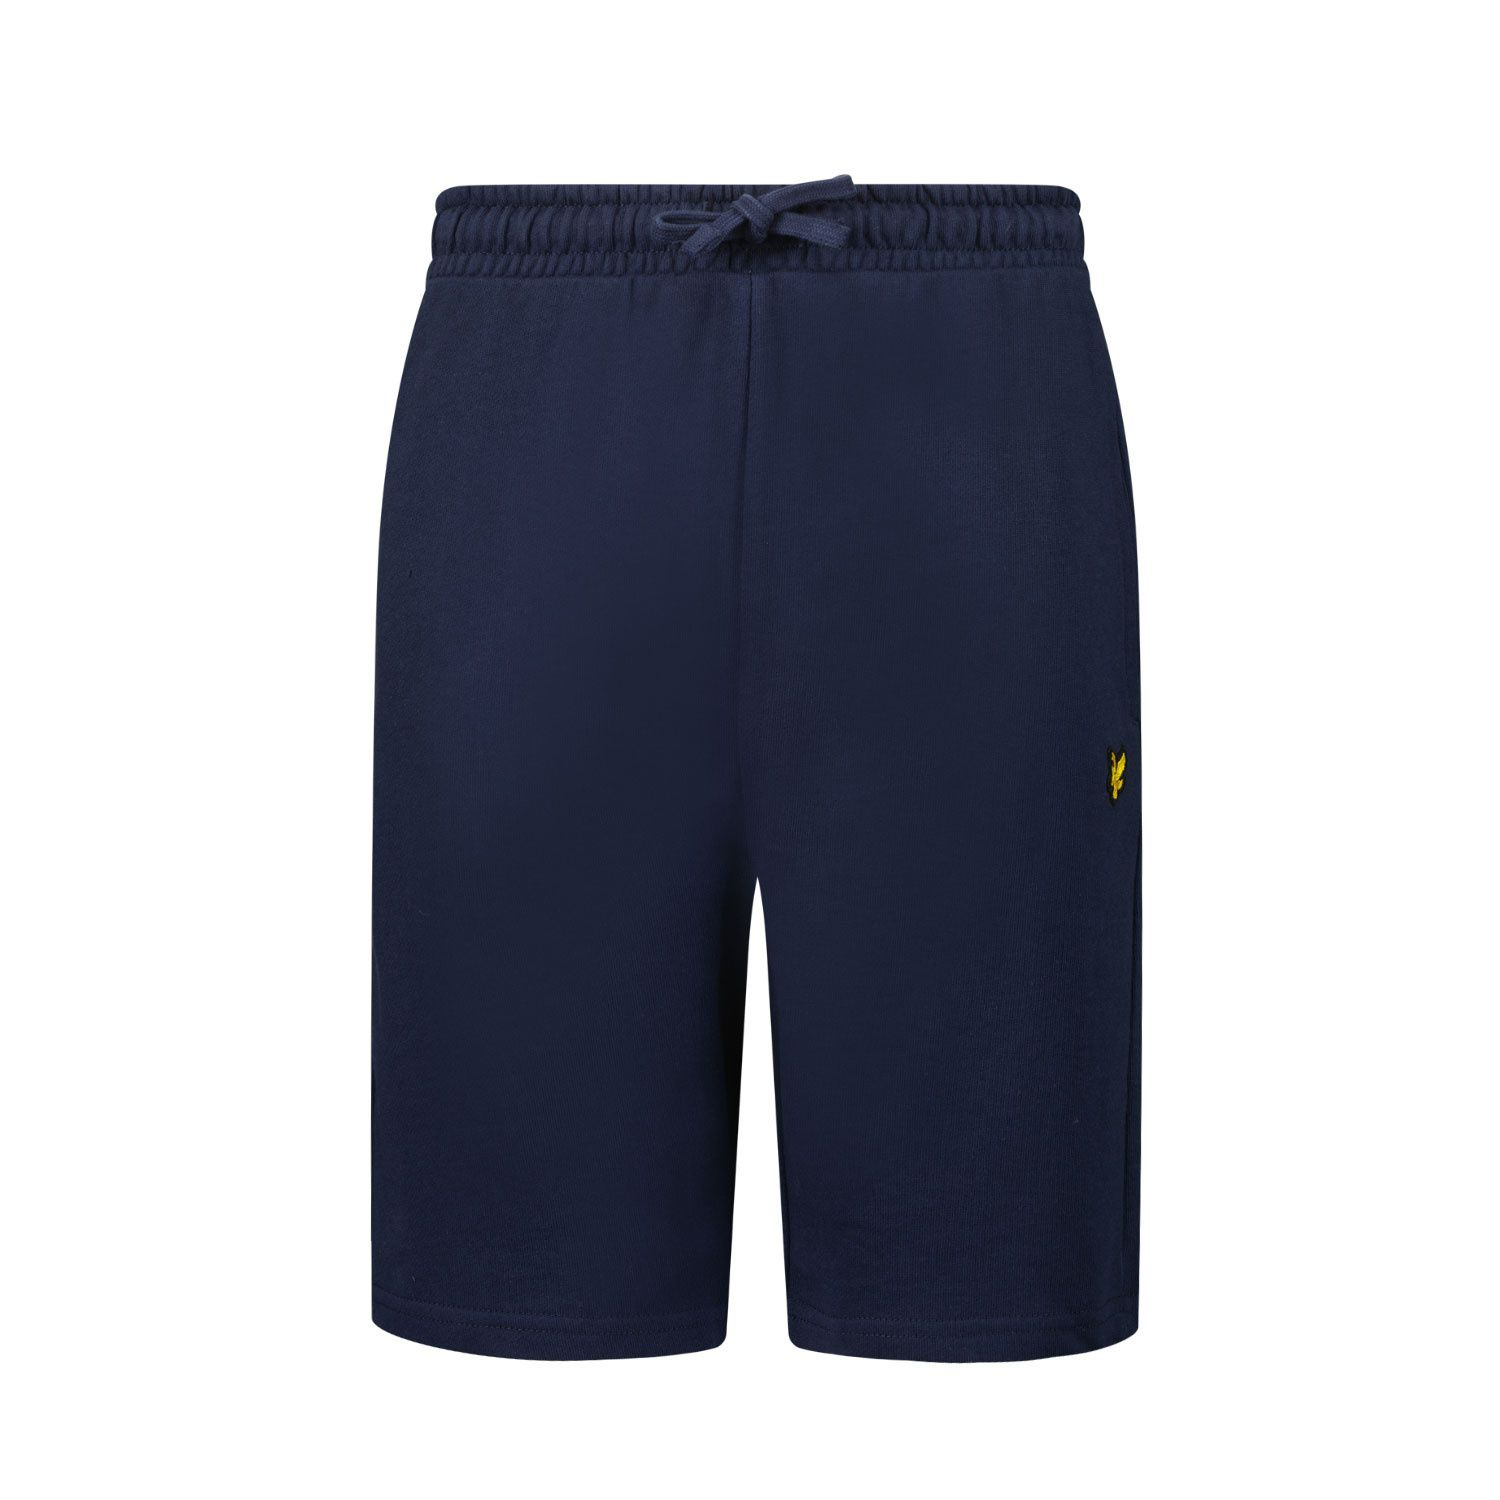 Picture of Lyle & Scott LSC0051S kids shorts navy